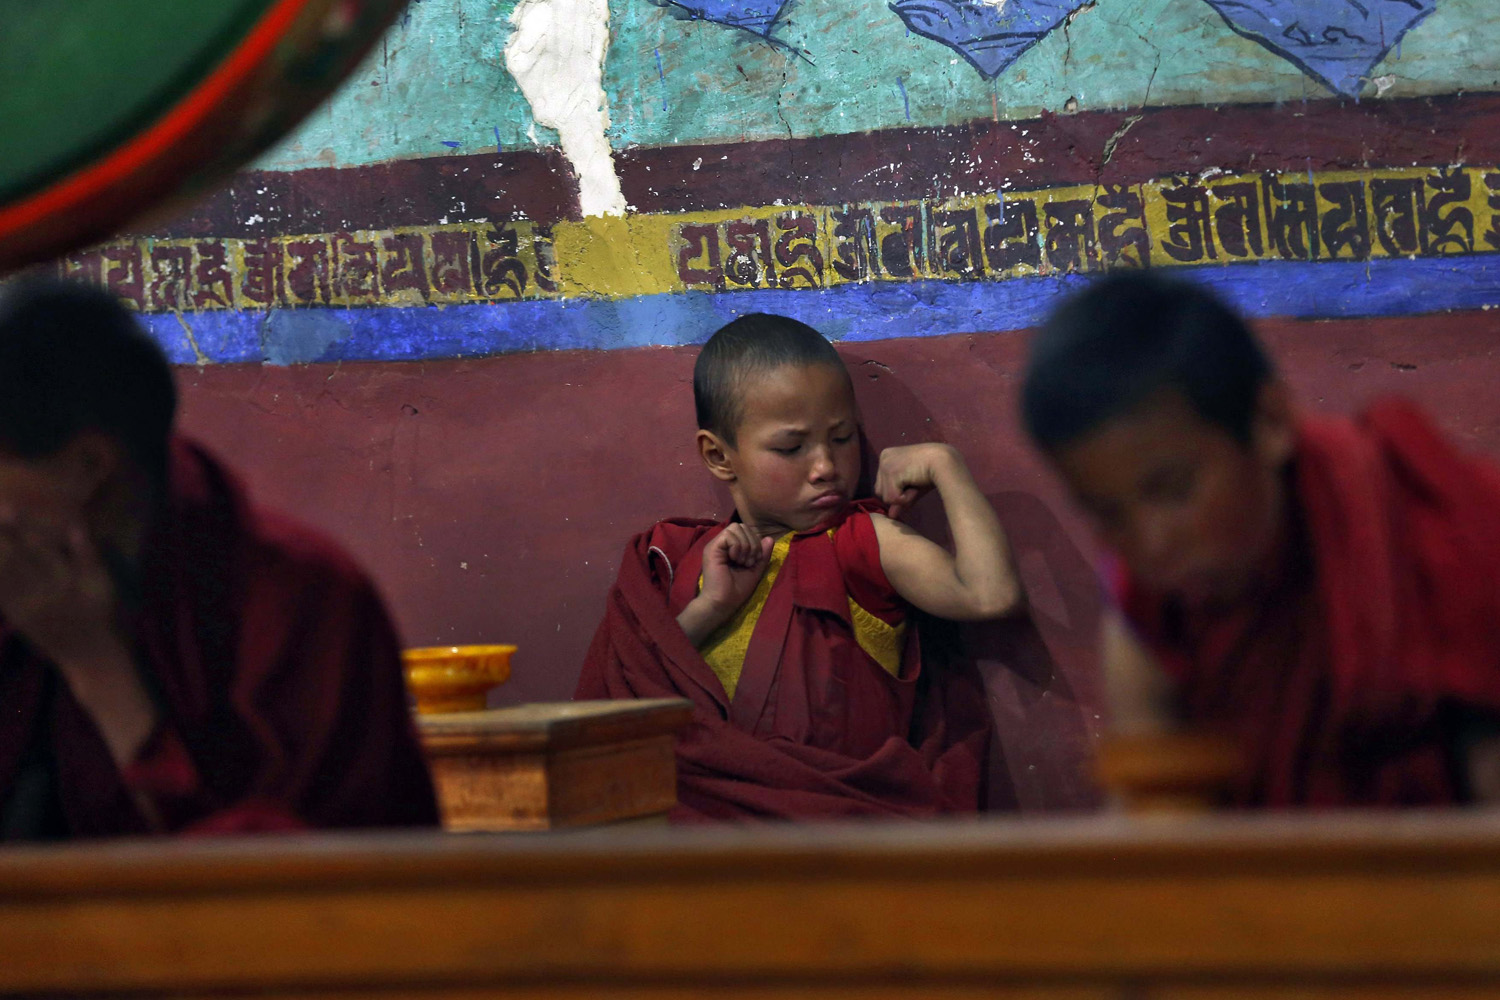 A young Buddhist monk flexes his muscles during morning prayers at Thikse Monastery in Ladakh, Indian administered Kashmir on May 7, 2014.